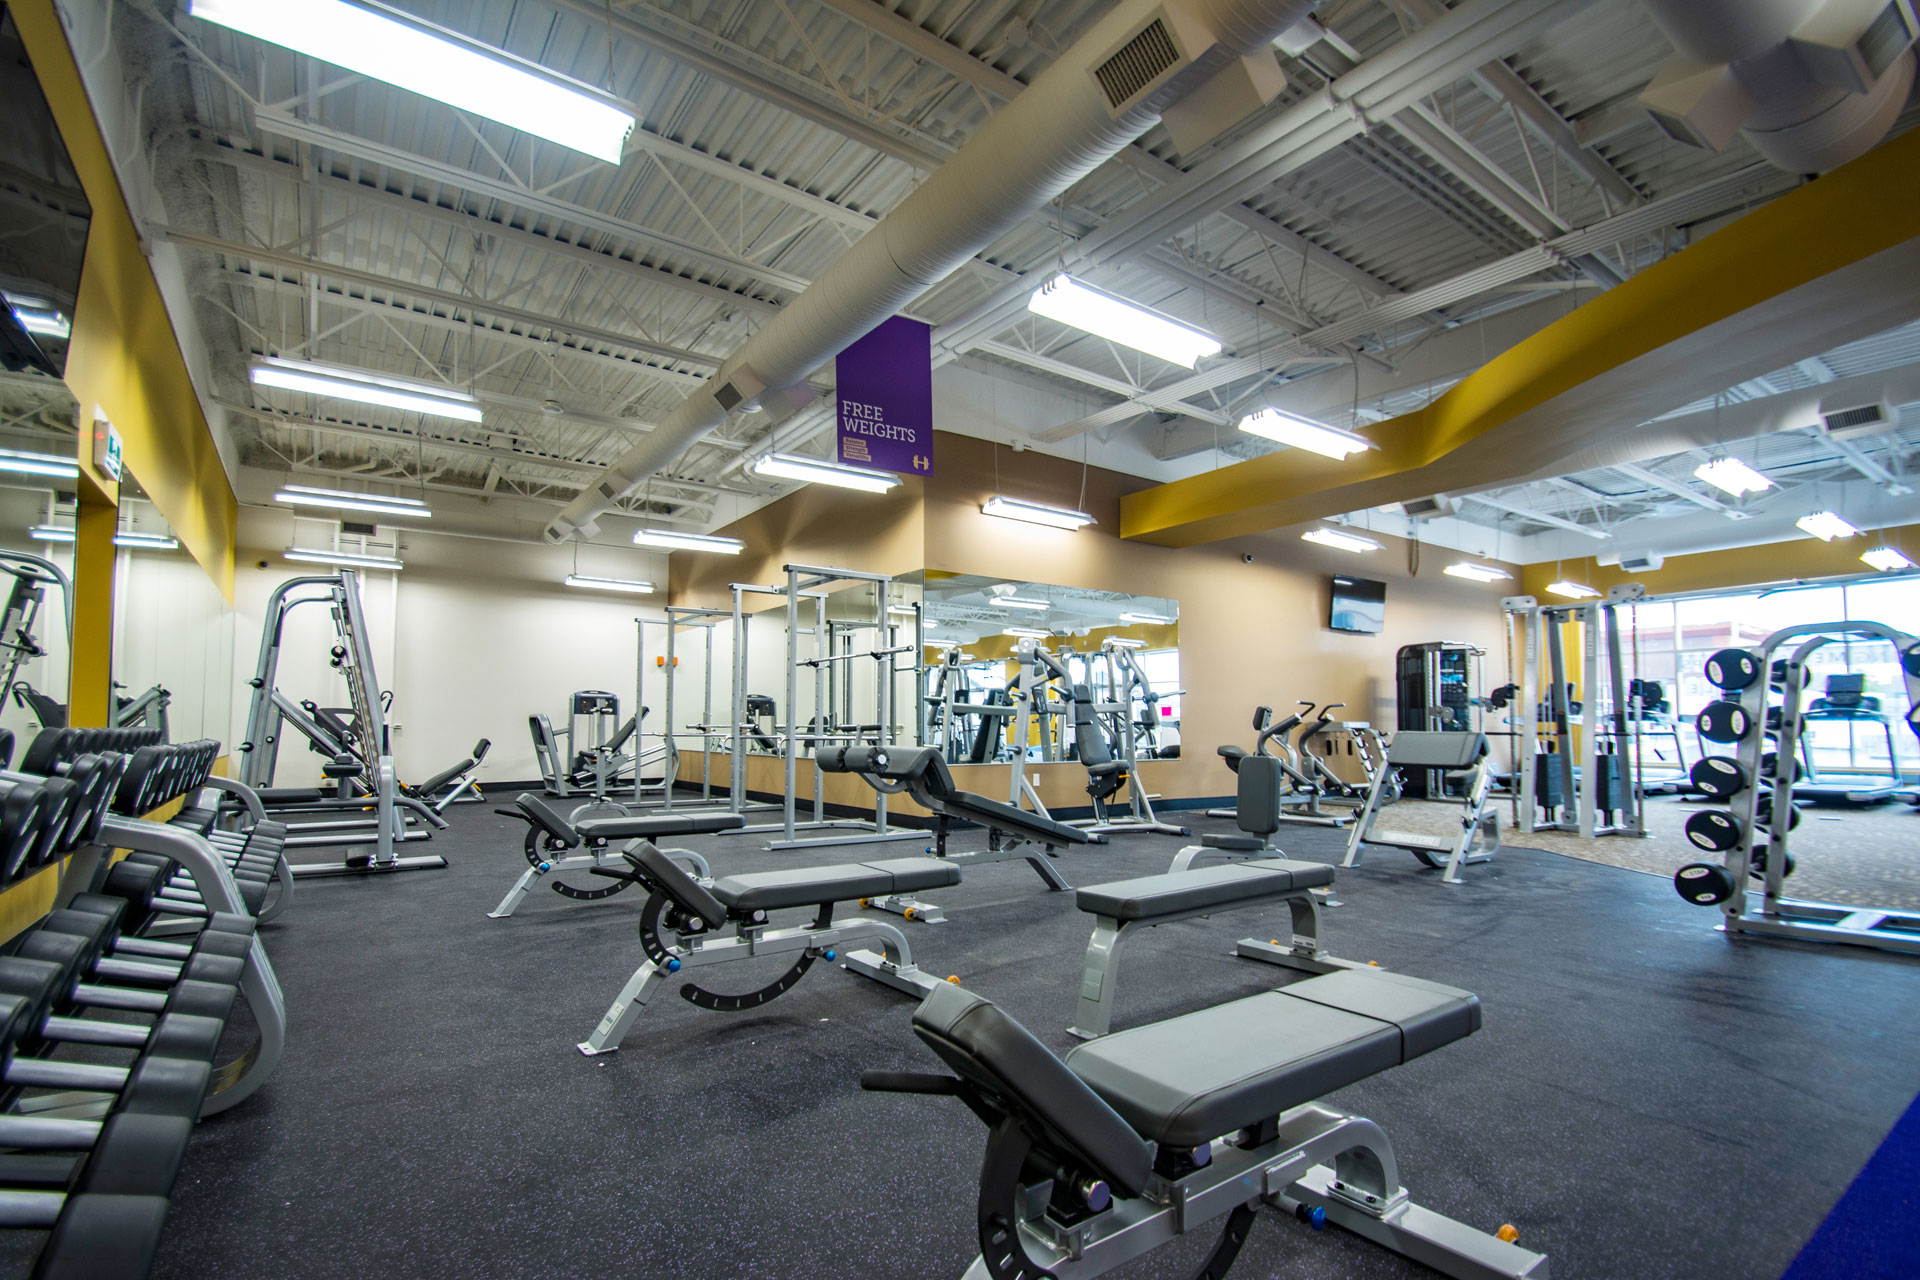 anytime fitness business plan Health plan discounts private  i have always been looking for fun and excitement in doing business anytime fitness fitted the bill with everything i was.